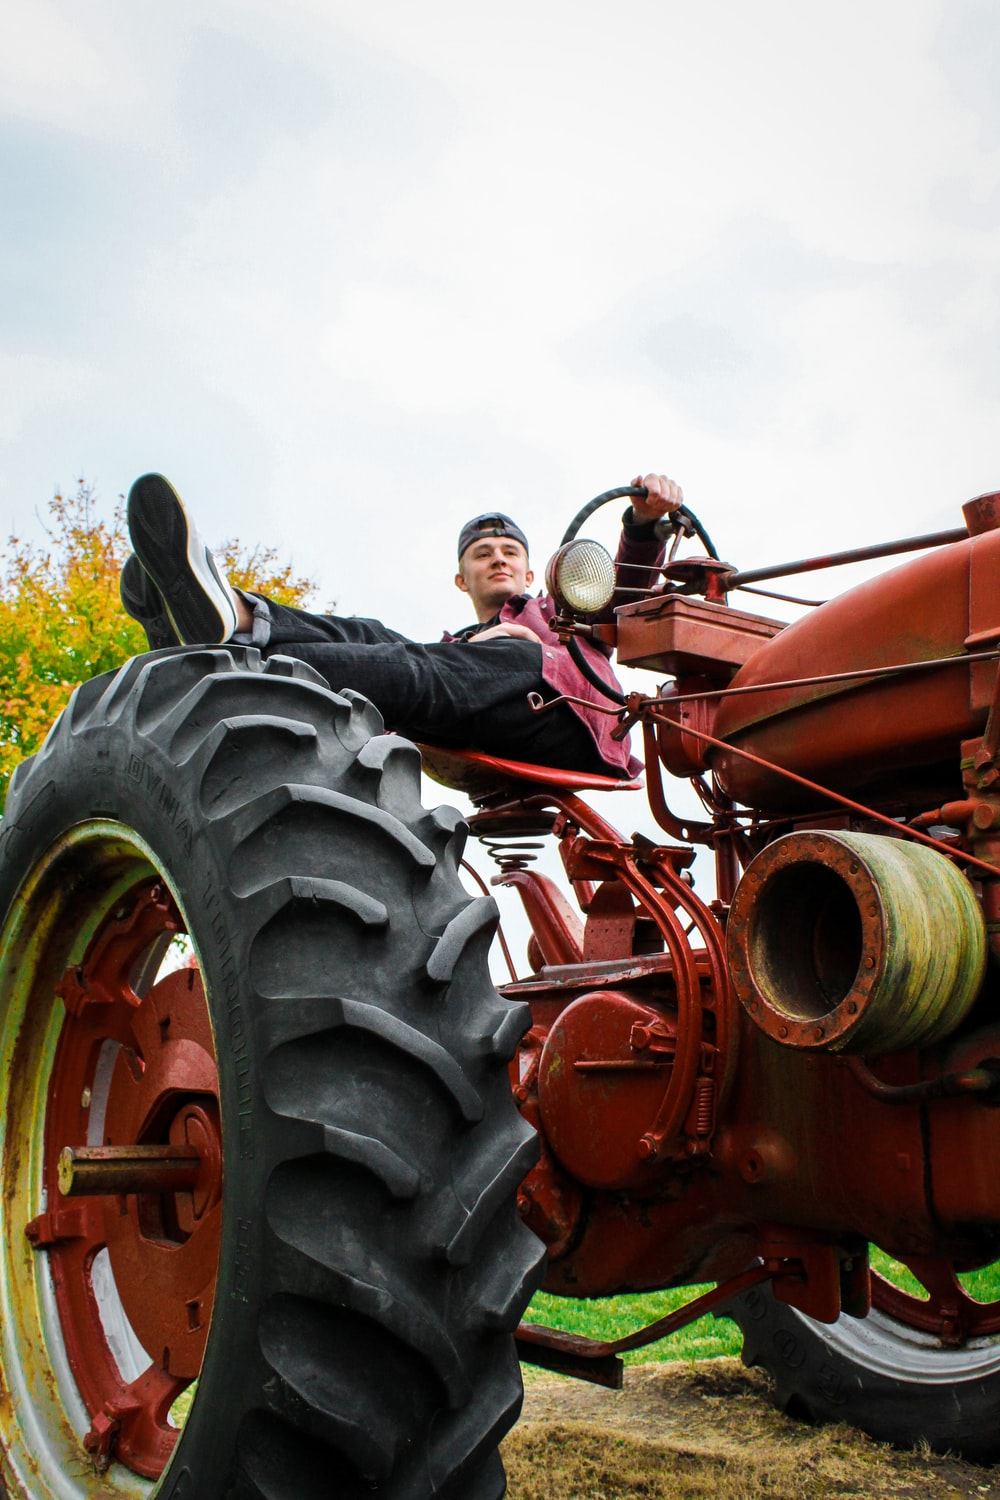 man in black jacket riding red tractor